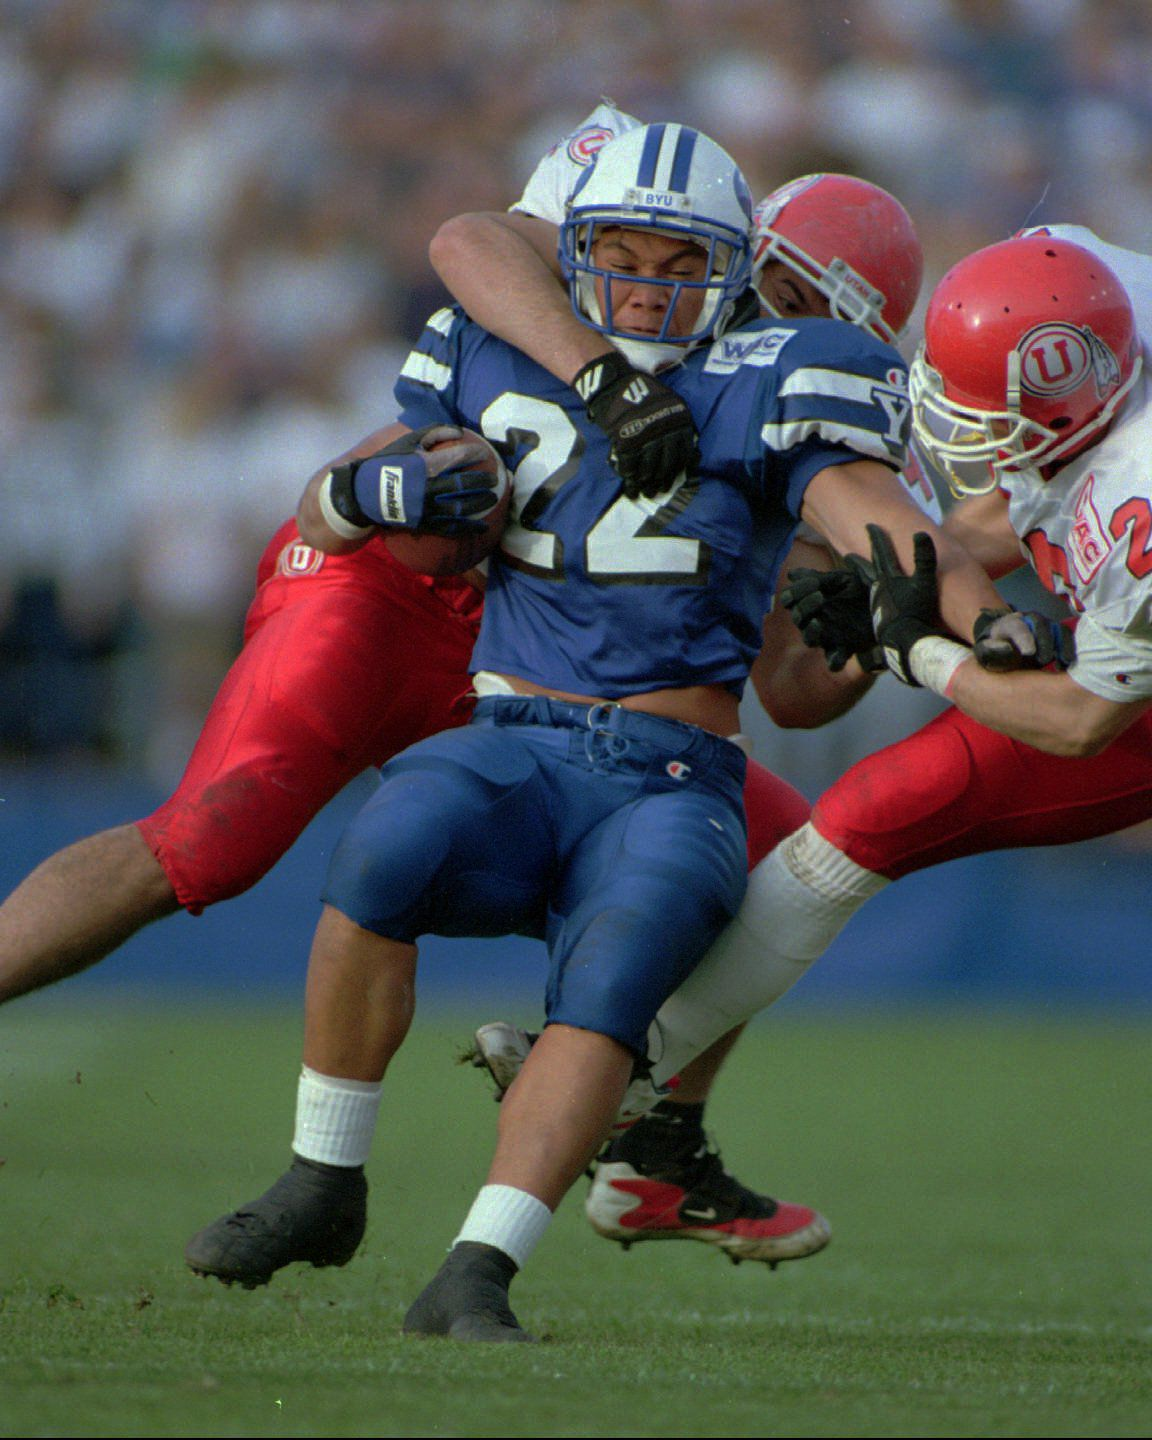 BYU runner Mark Atuaia is stacked up by Utha defenders Chad Kauhaahaa (behind) and Jeff Kirkman. PHOTO BY GARY MCKELLAR. (Submission date: 10/21/2002)